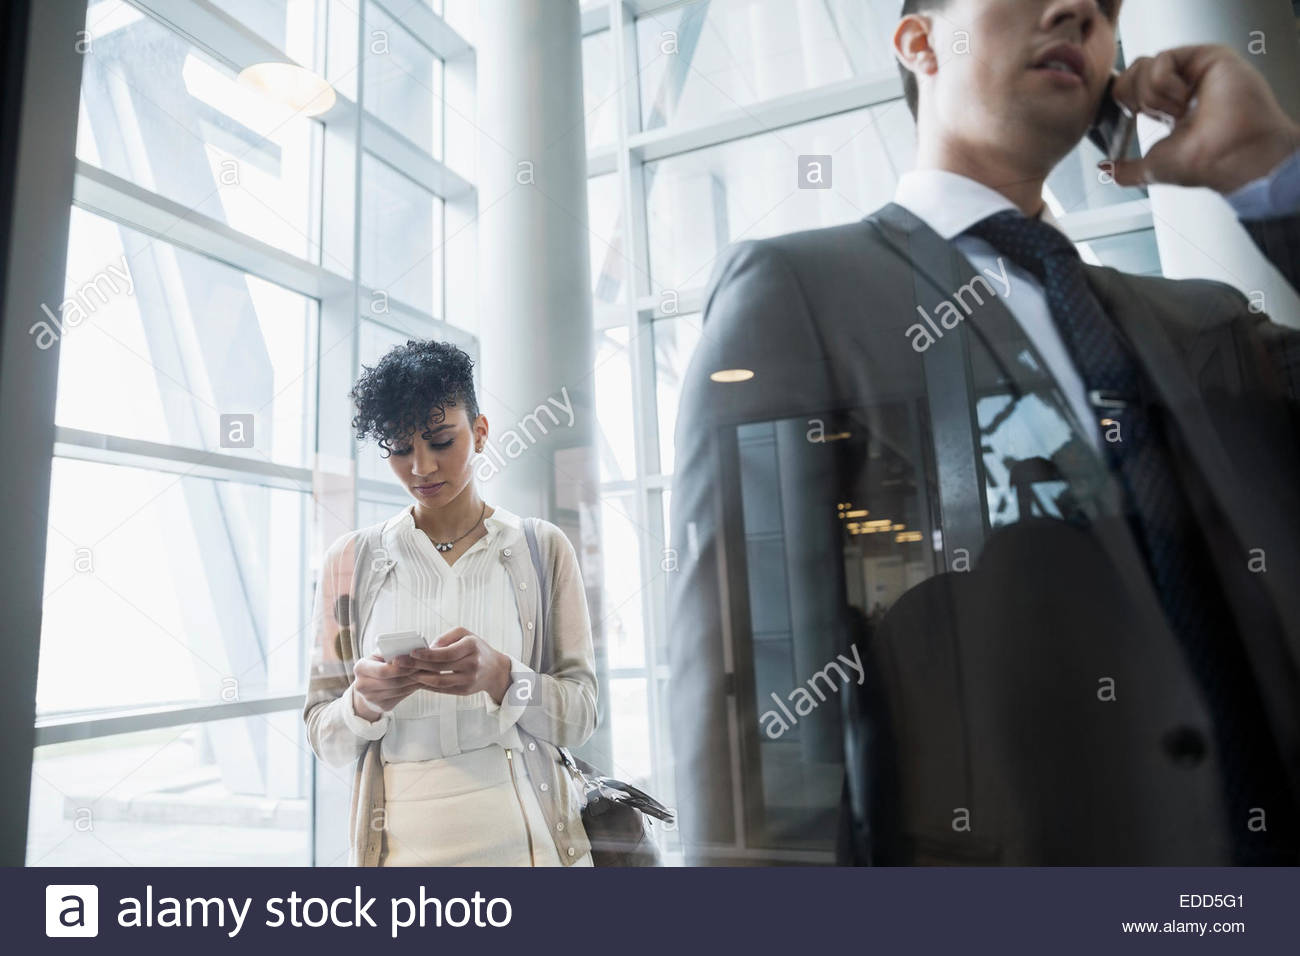 Business people with cell phones - Stock Image